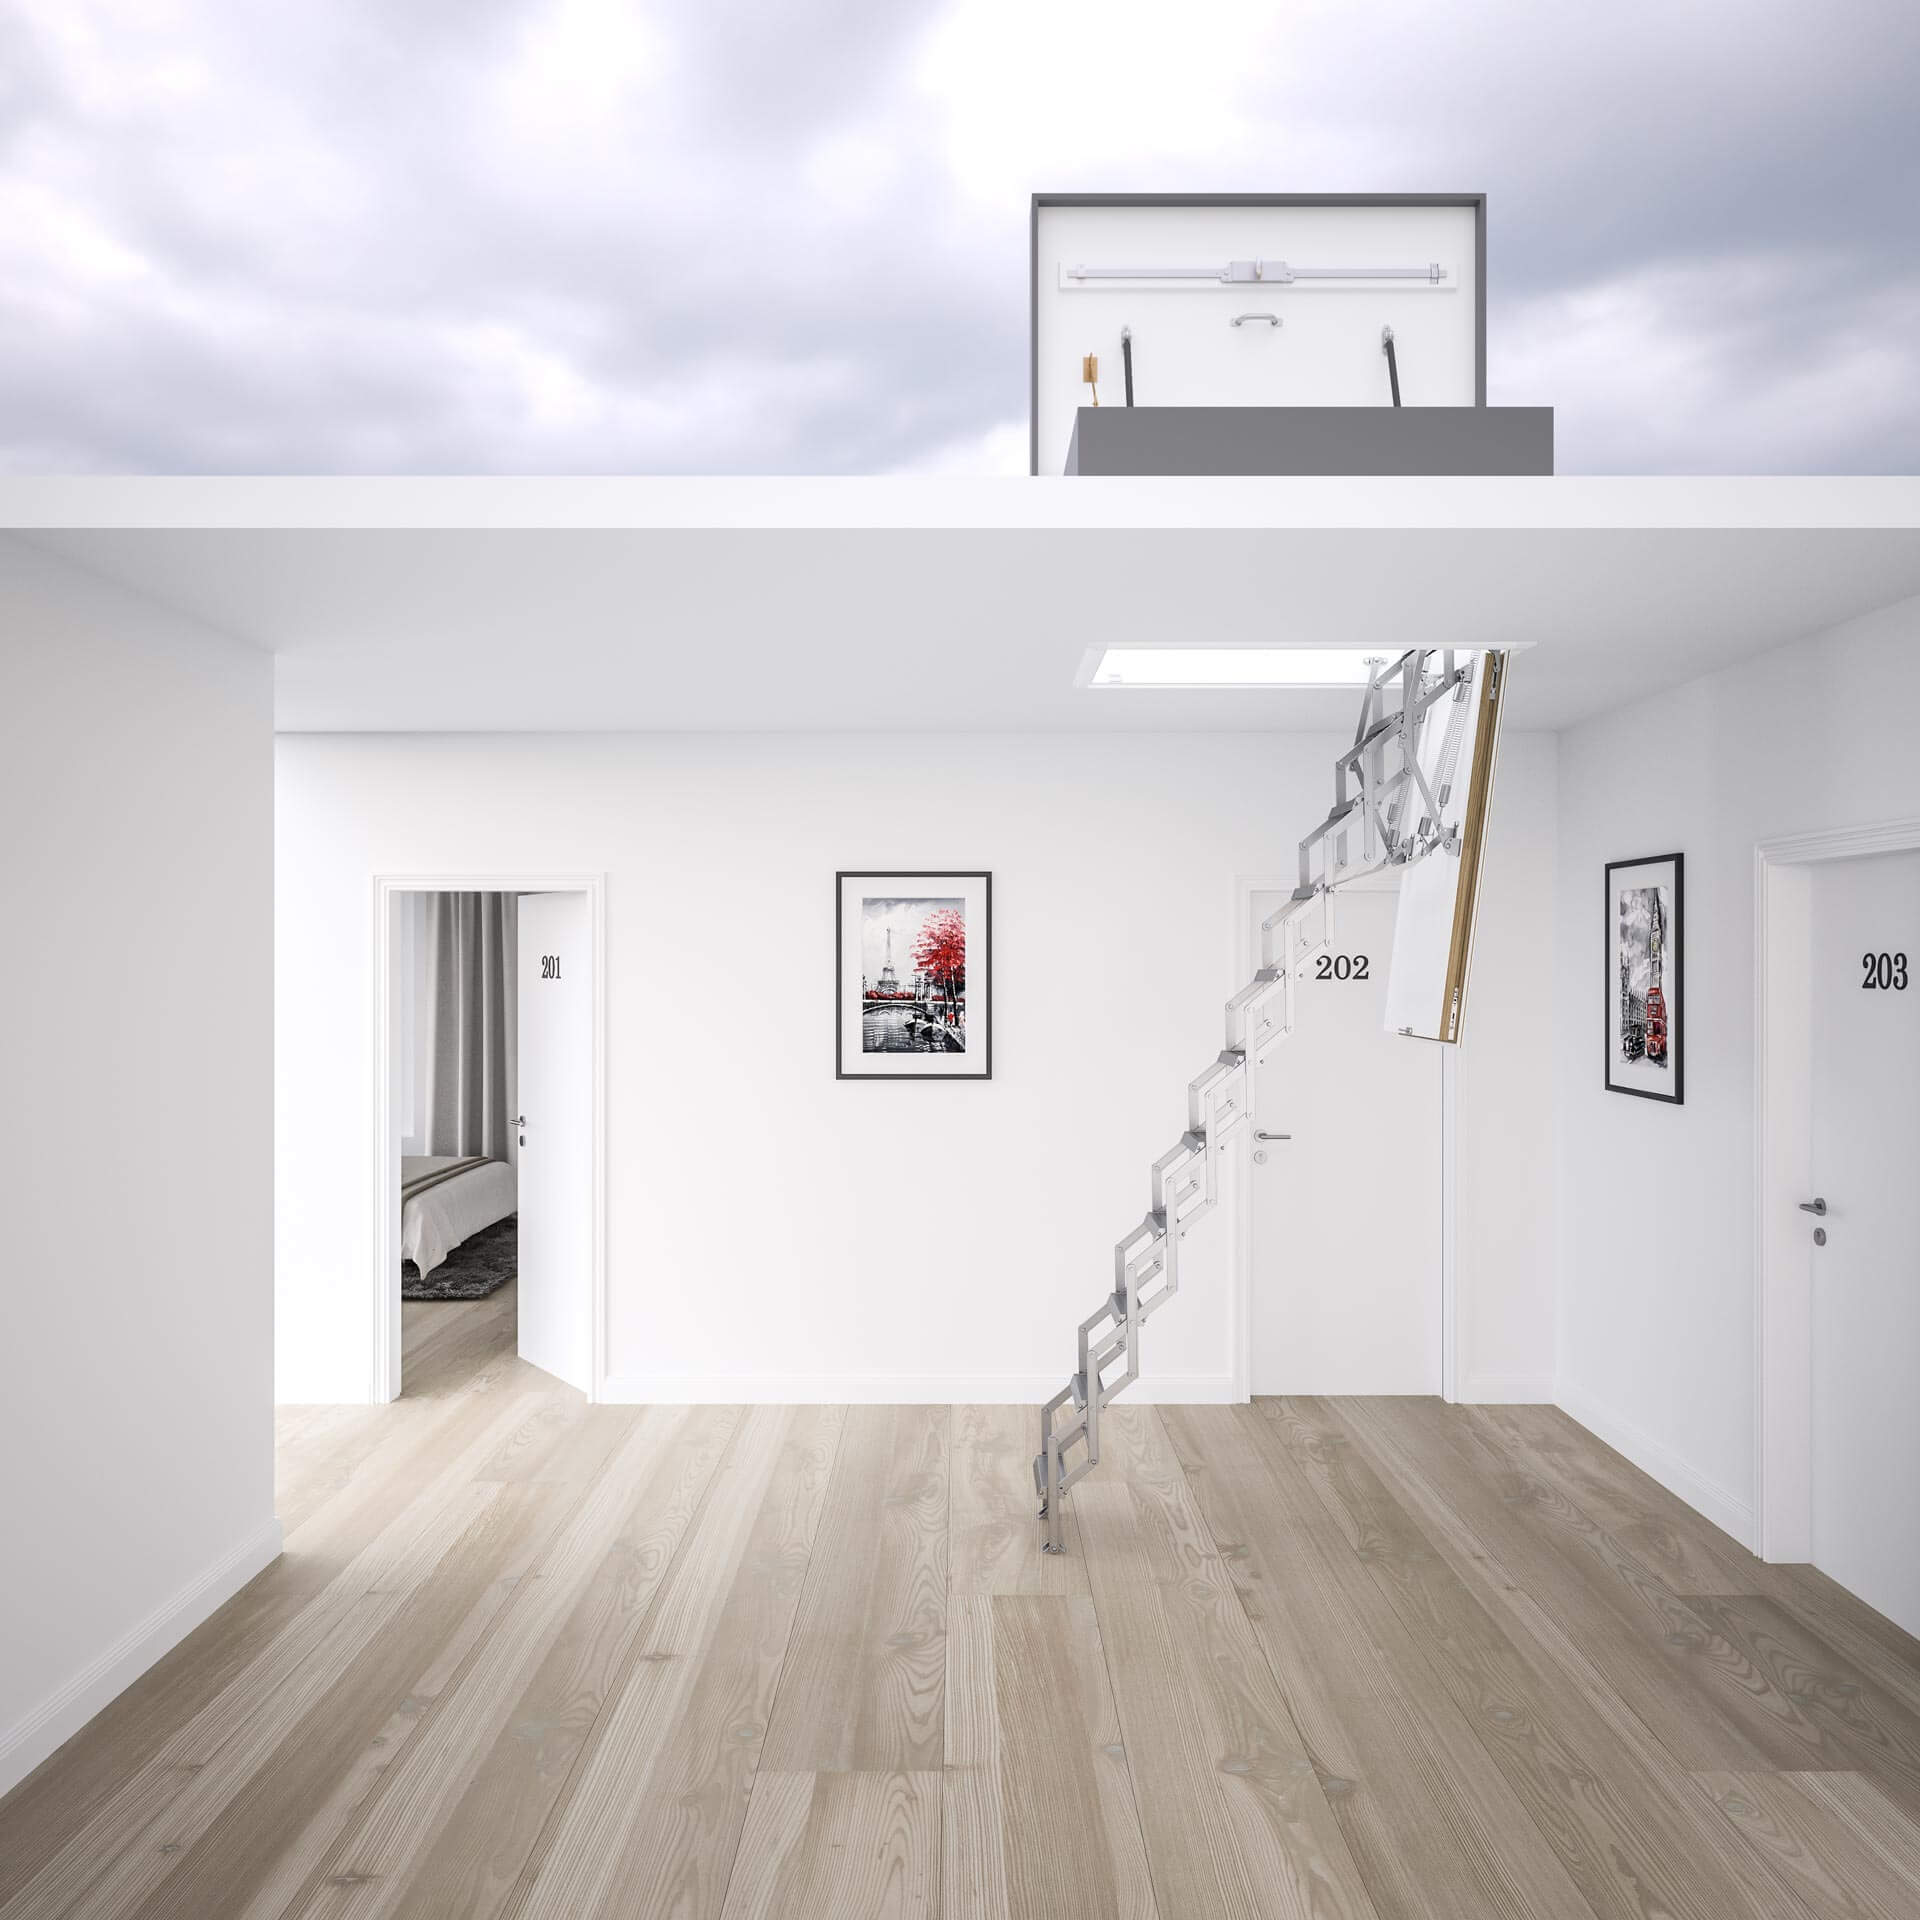 Concertina loft ladder with roof hatch, Ecco from Premier Loft Ladders. Weather resistant flat roof hatch